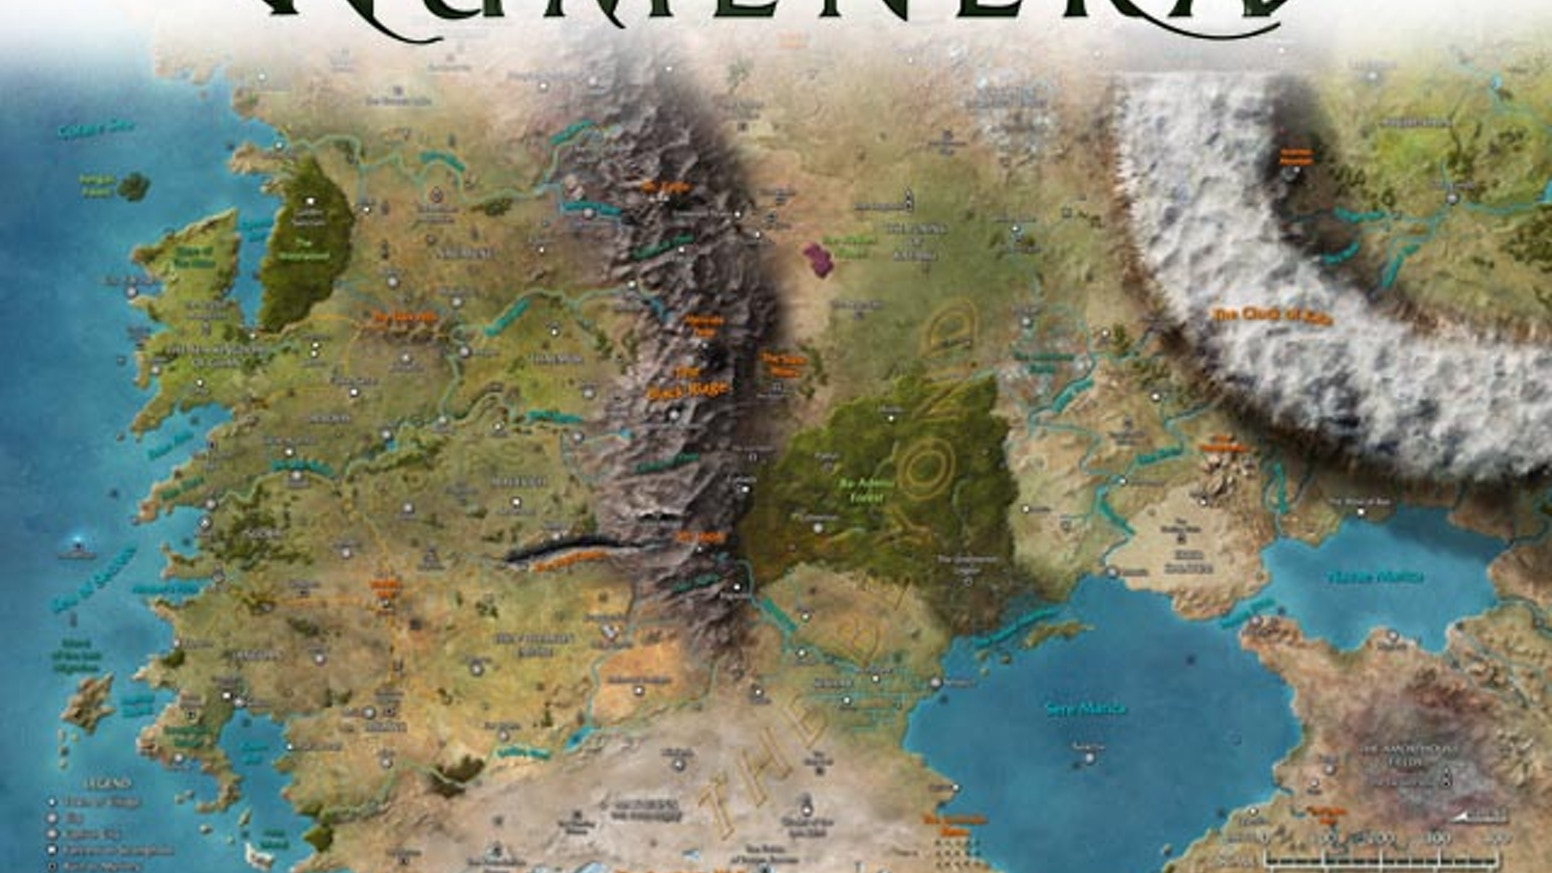 Numenera Poster Maps Of The Ninth World By Christopher West - High quality world map poster